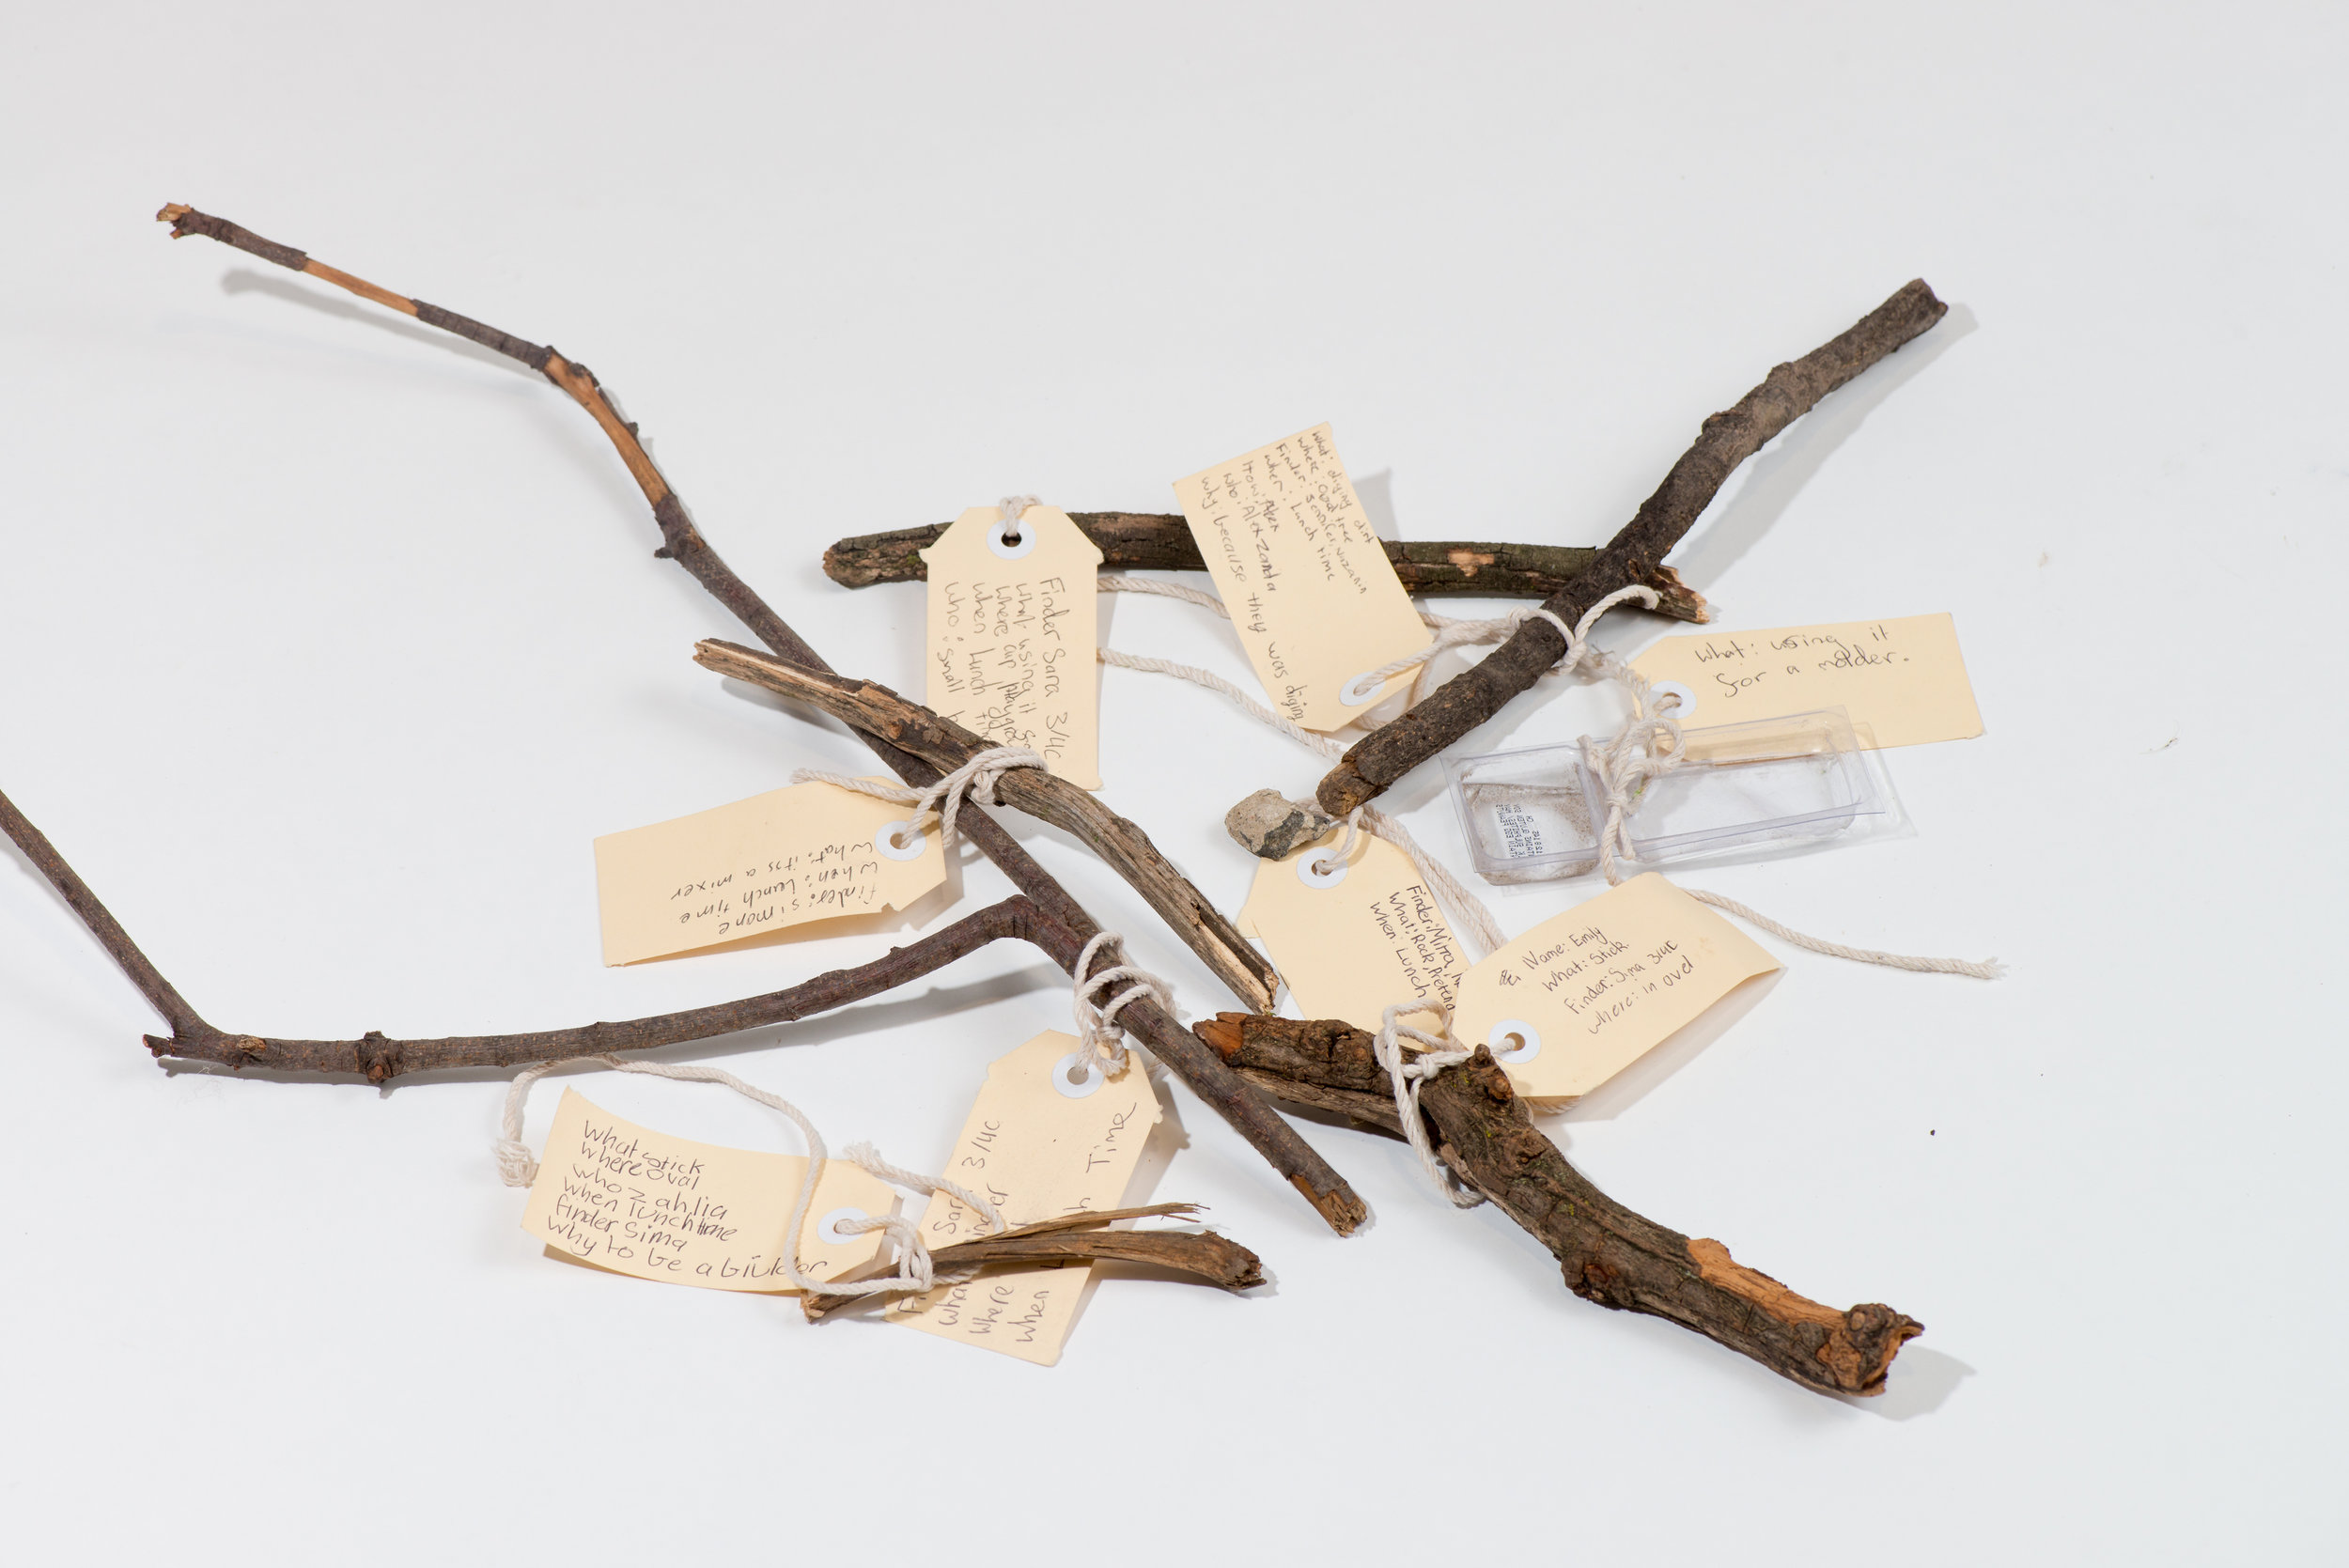 Kym Maxwell,  Collection of found yard materials with labels for the Museum of Anticipation at Dandenong Primary School (Site DPS various locations internal school grounds). Materials: sticks, branches, plastic container, 2018, inkjet print, 30cms x 40cms.